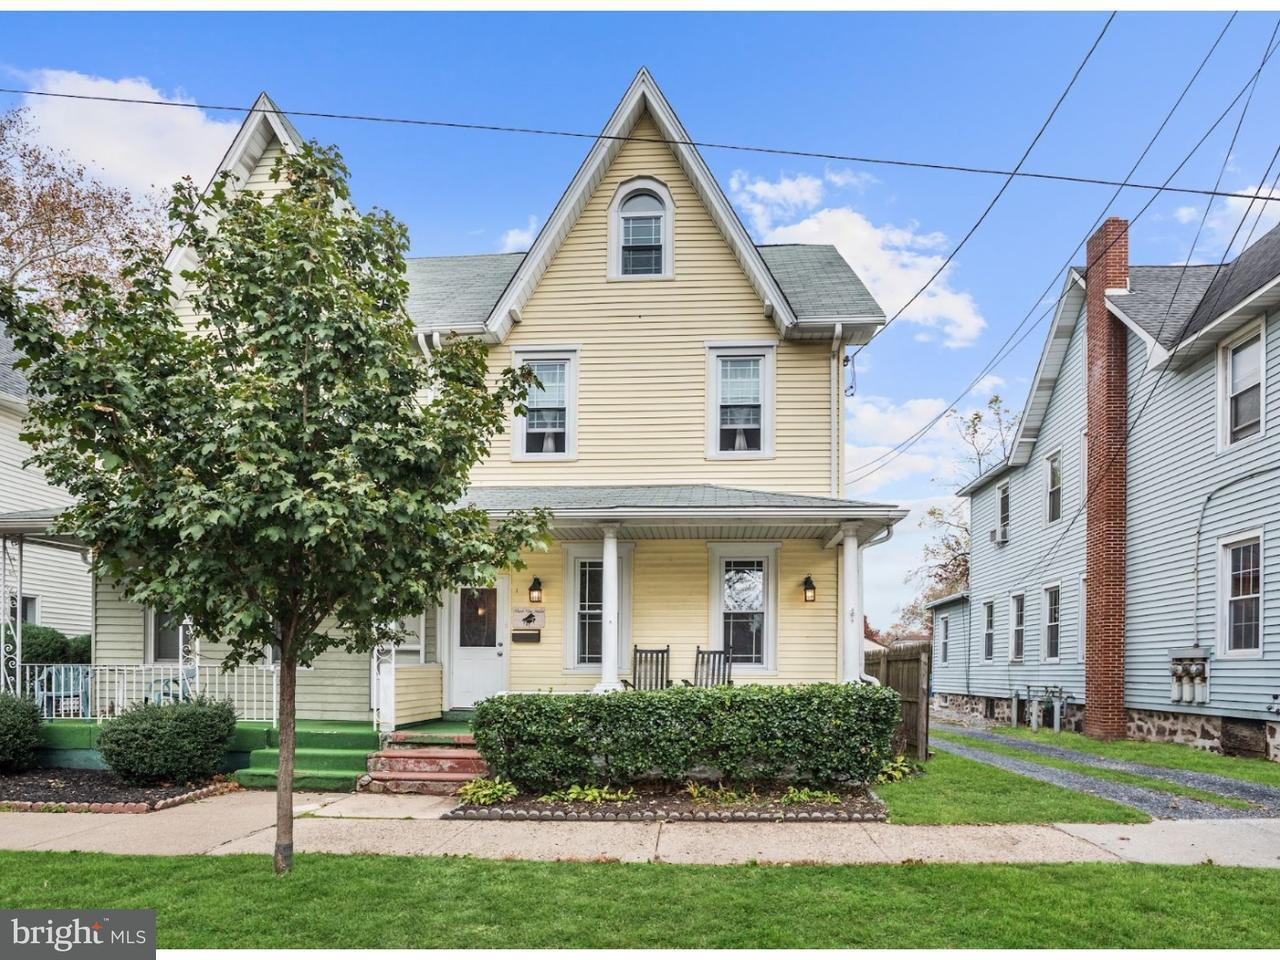 Townhouse for Sale at 515 HOWARD Street Riverton, New Jersey 08077 United States